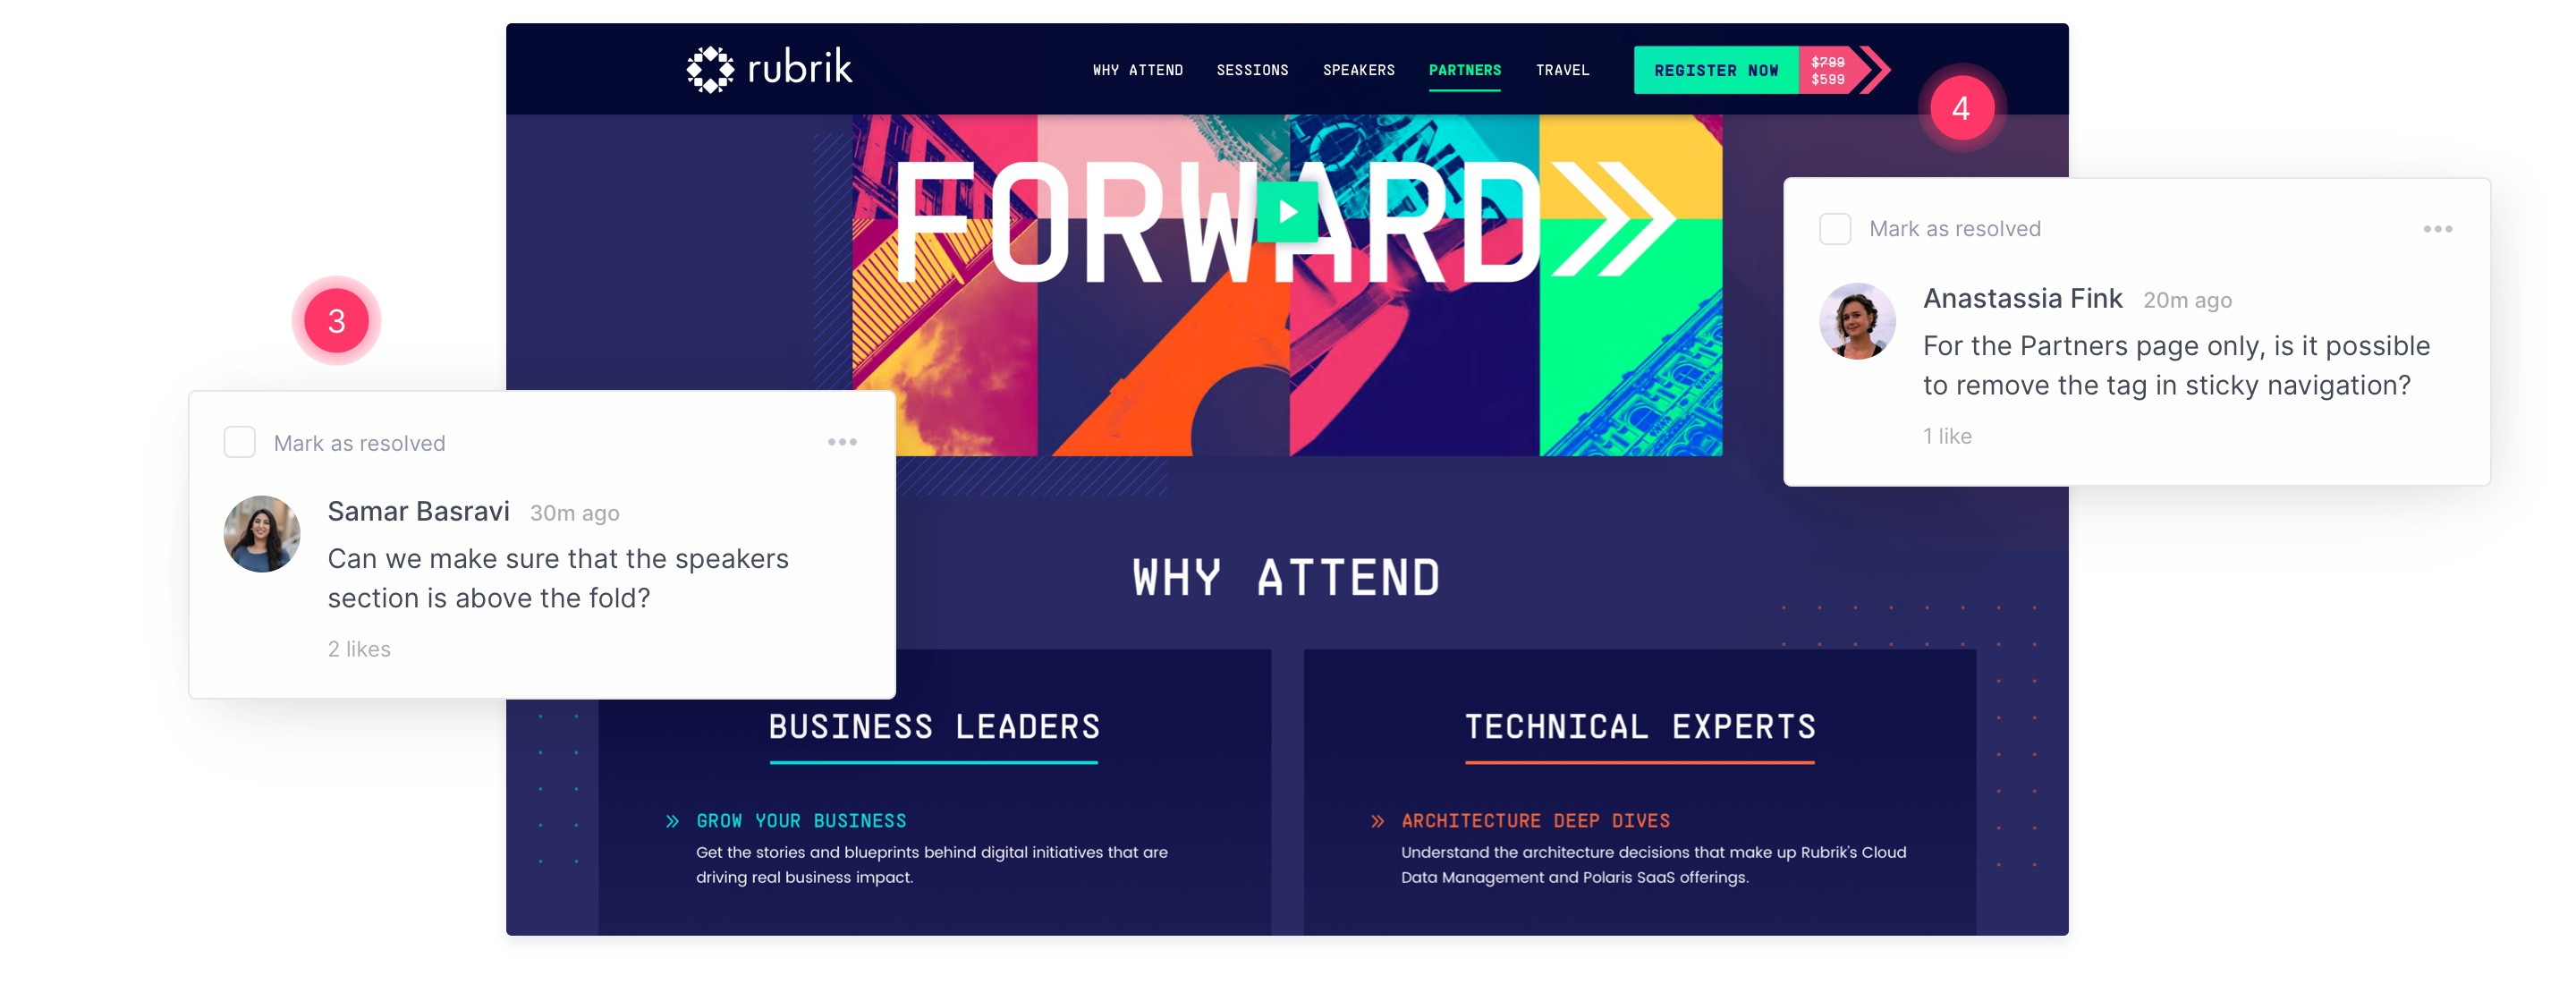 rubrik forward digital summit ongoing collaborative approach